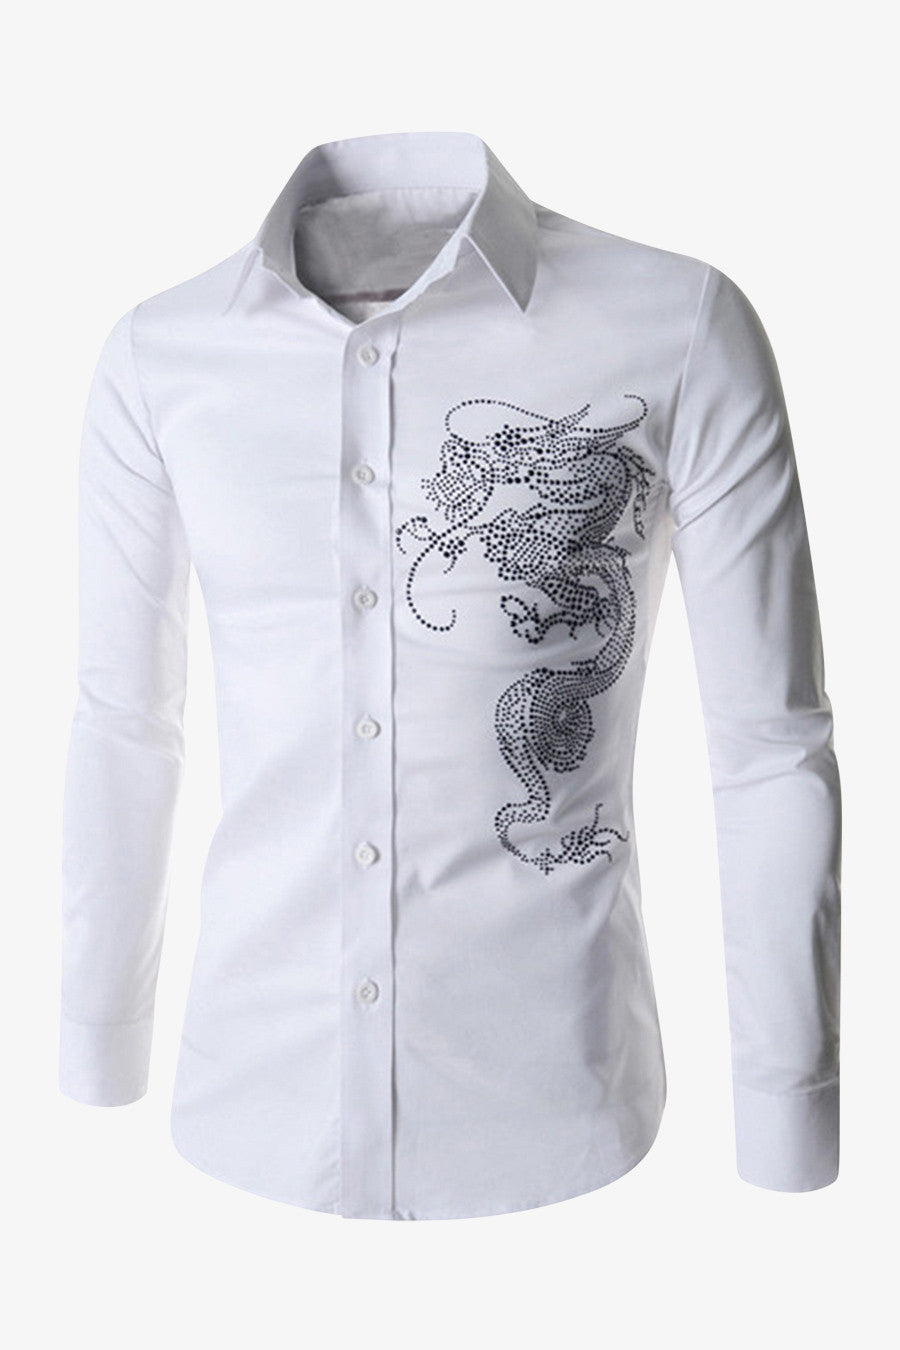 Embroidered Dragon White Shirt